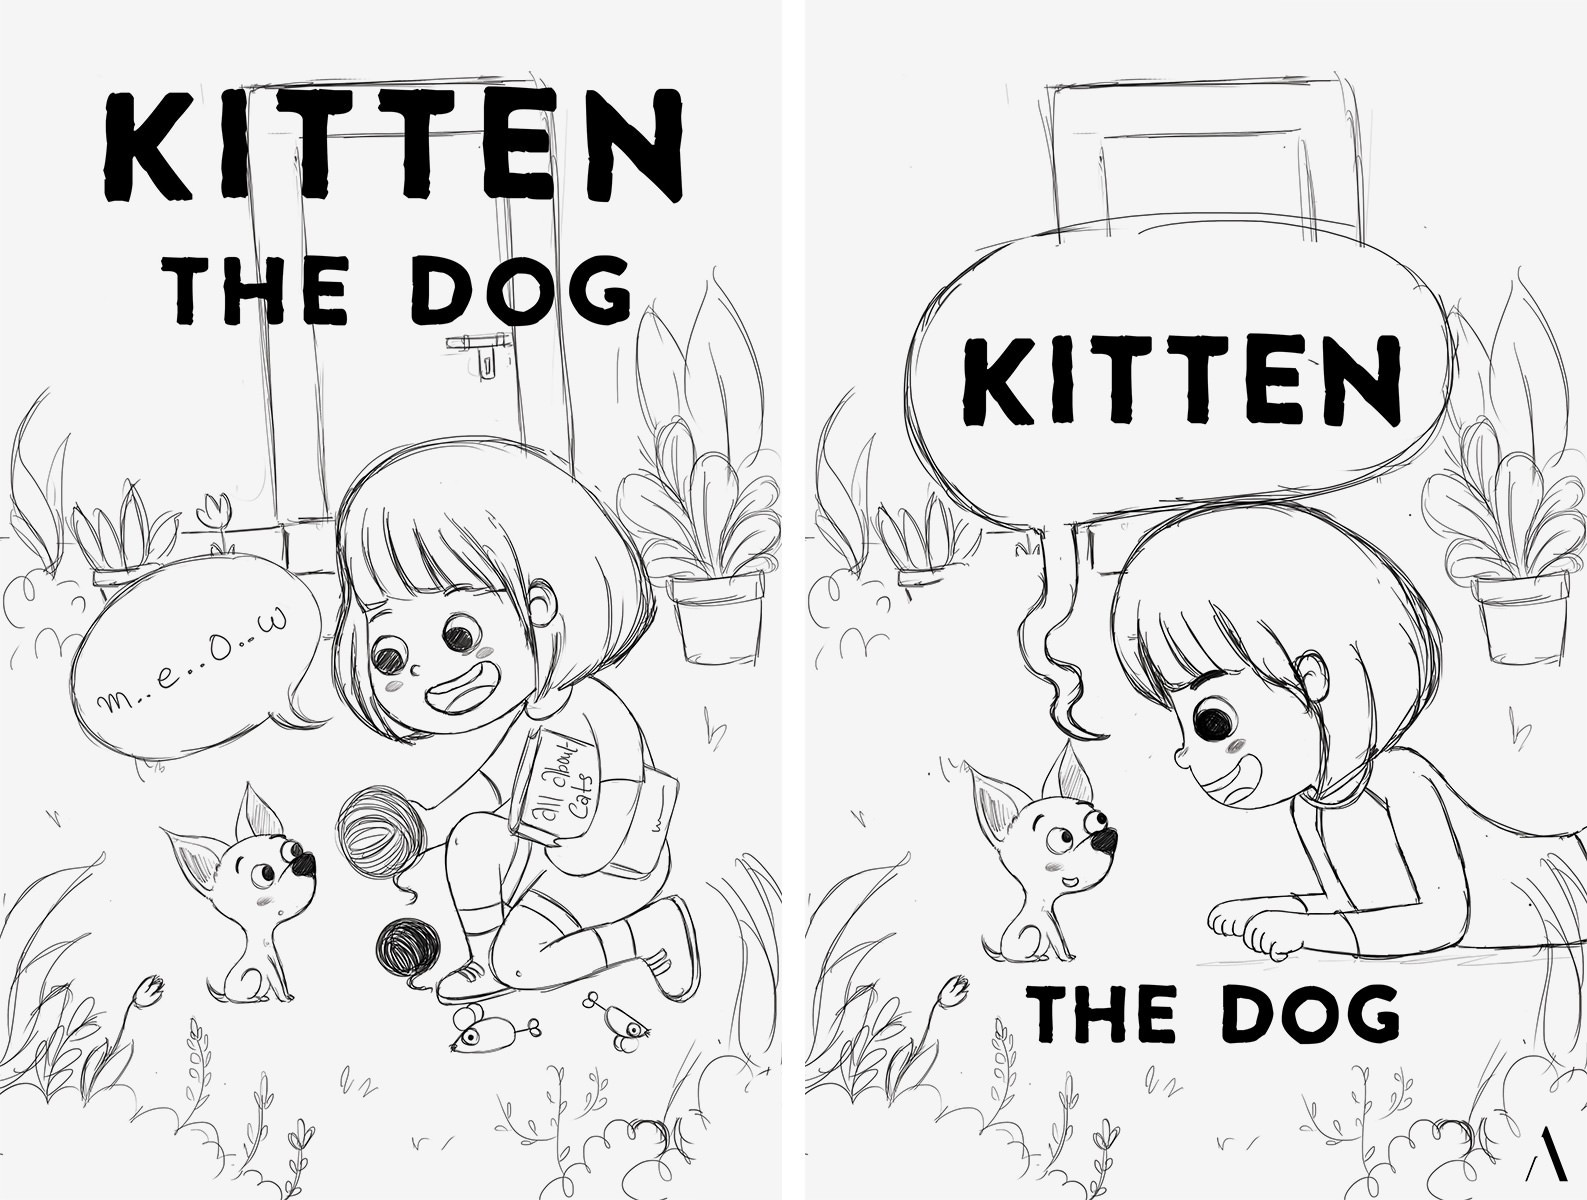 Initial concept sketches for the cover of the children's book 'Kitten the Dog'